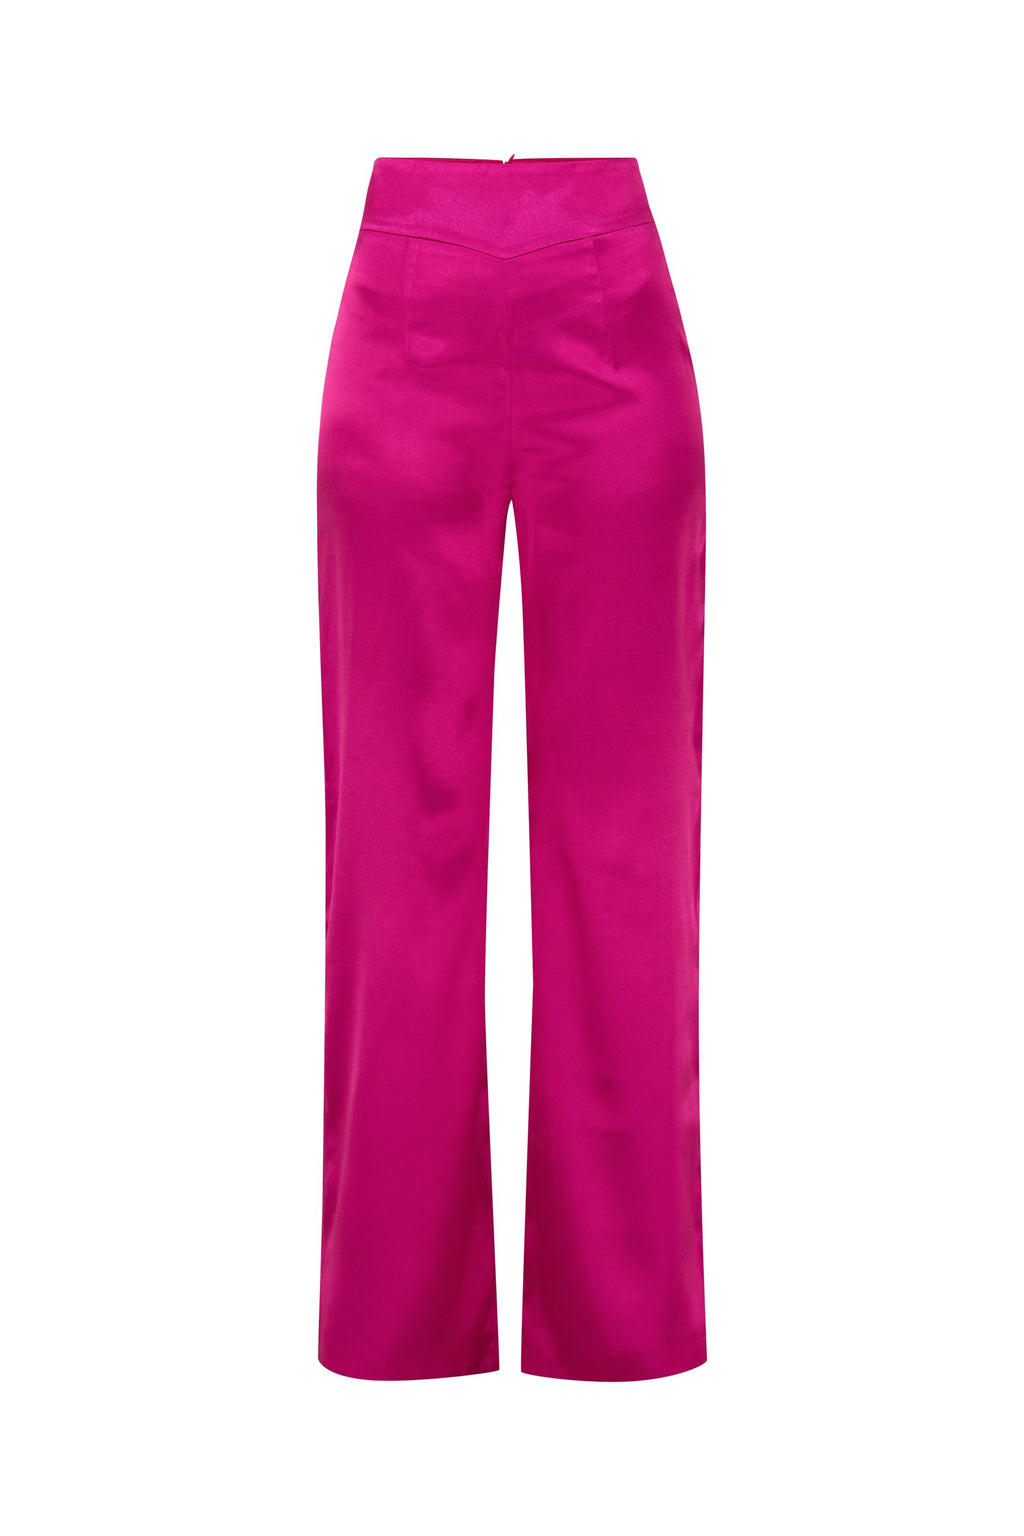 Wild Dream Satin High-Rise Wide-Leg Trousers - Tia Dorraine London